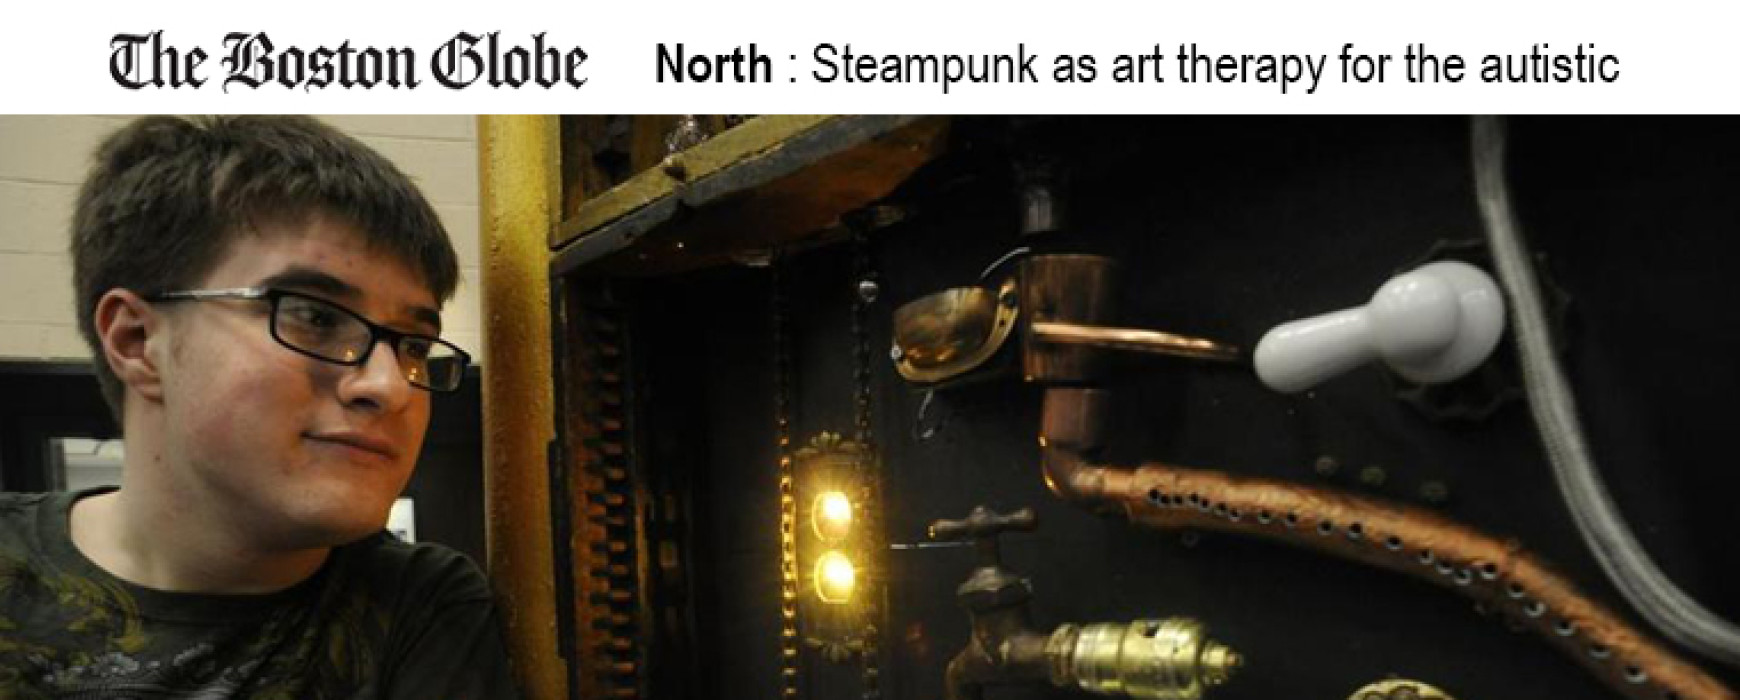 The Boston Globe: Steampunk as art therapy for the autistic